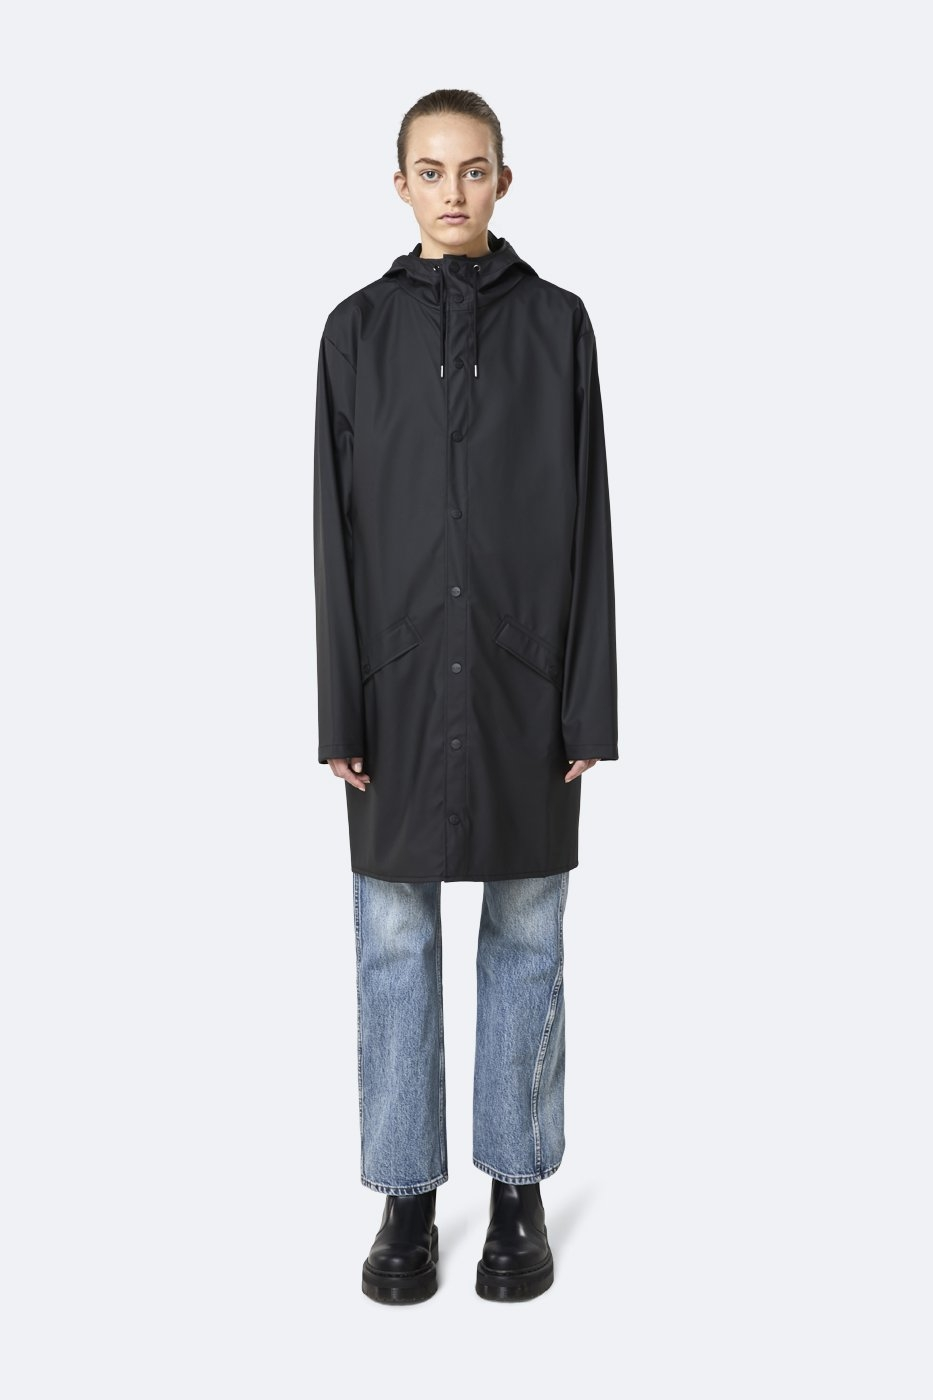 Rains Long Jacket schwarz unisex M/L